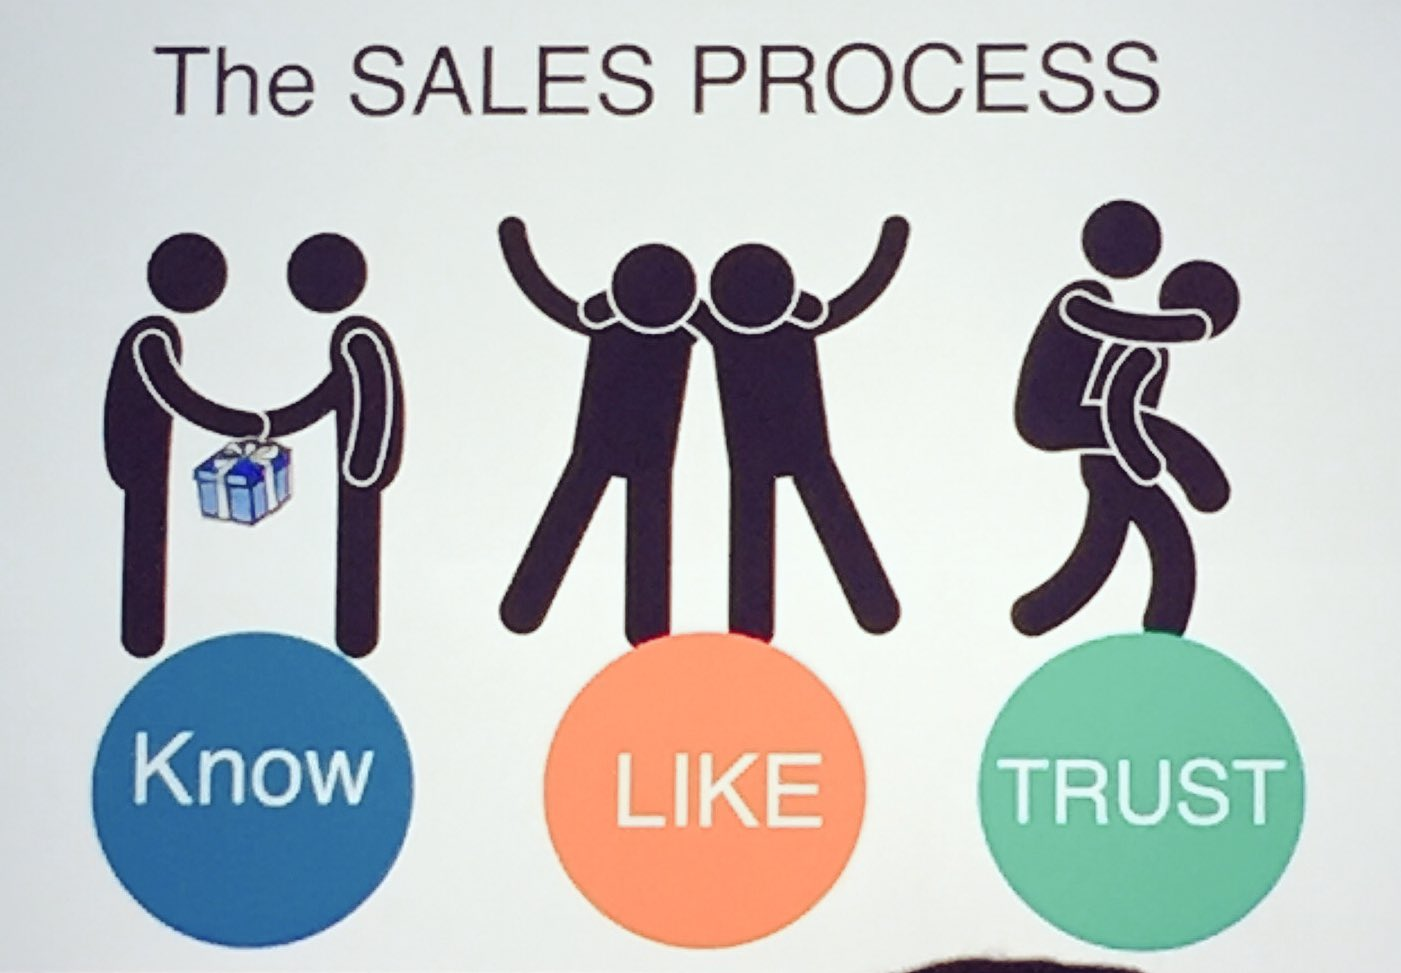 This is the best explanation of the sales process I've ever seen. Kudos to @ChaleneJohnson for her fantastic presentation! #SMMW17 https://t.co/Du22H1DlqN